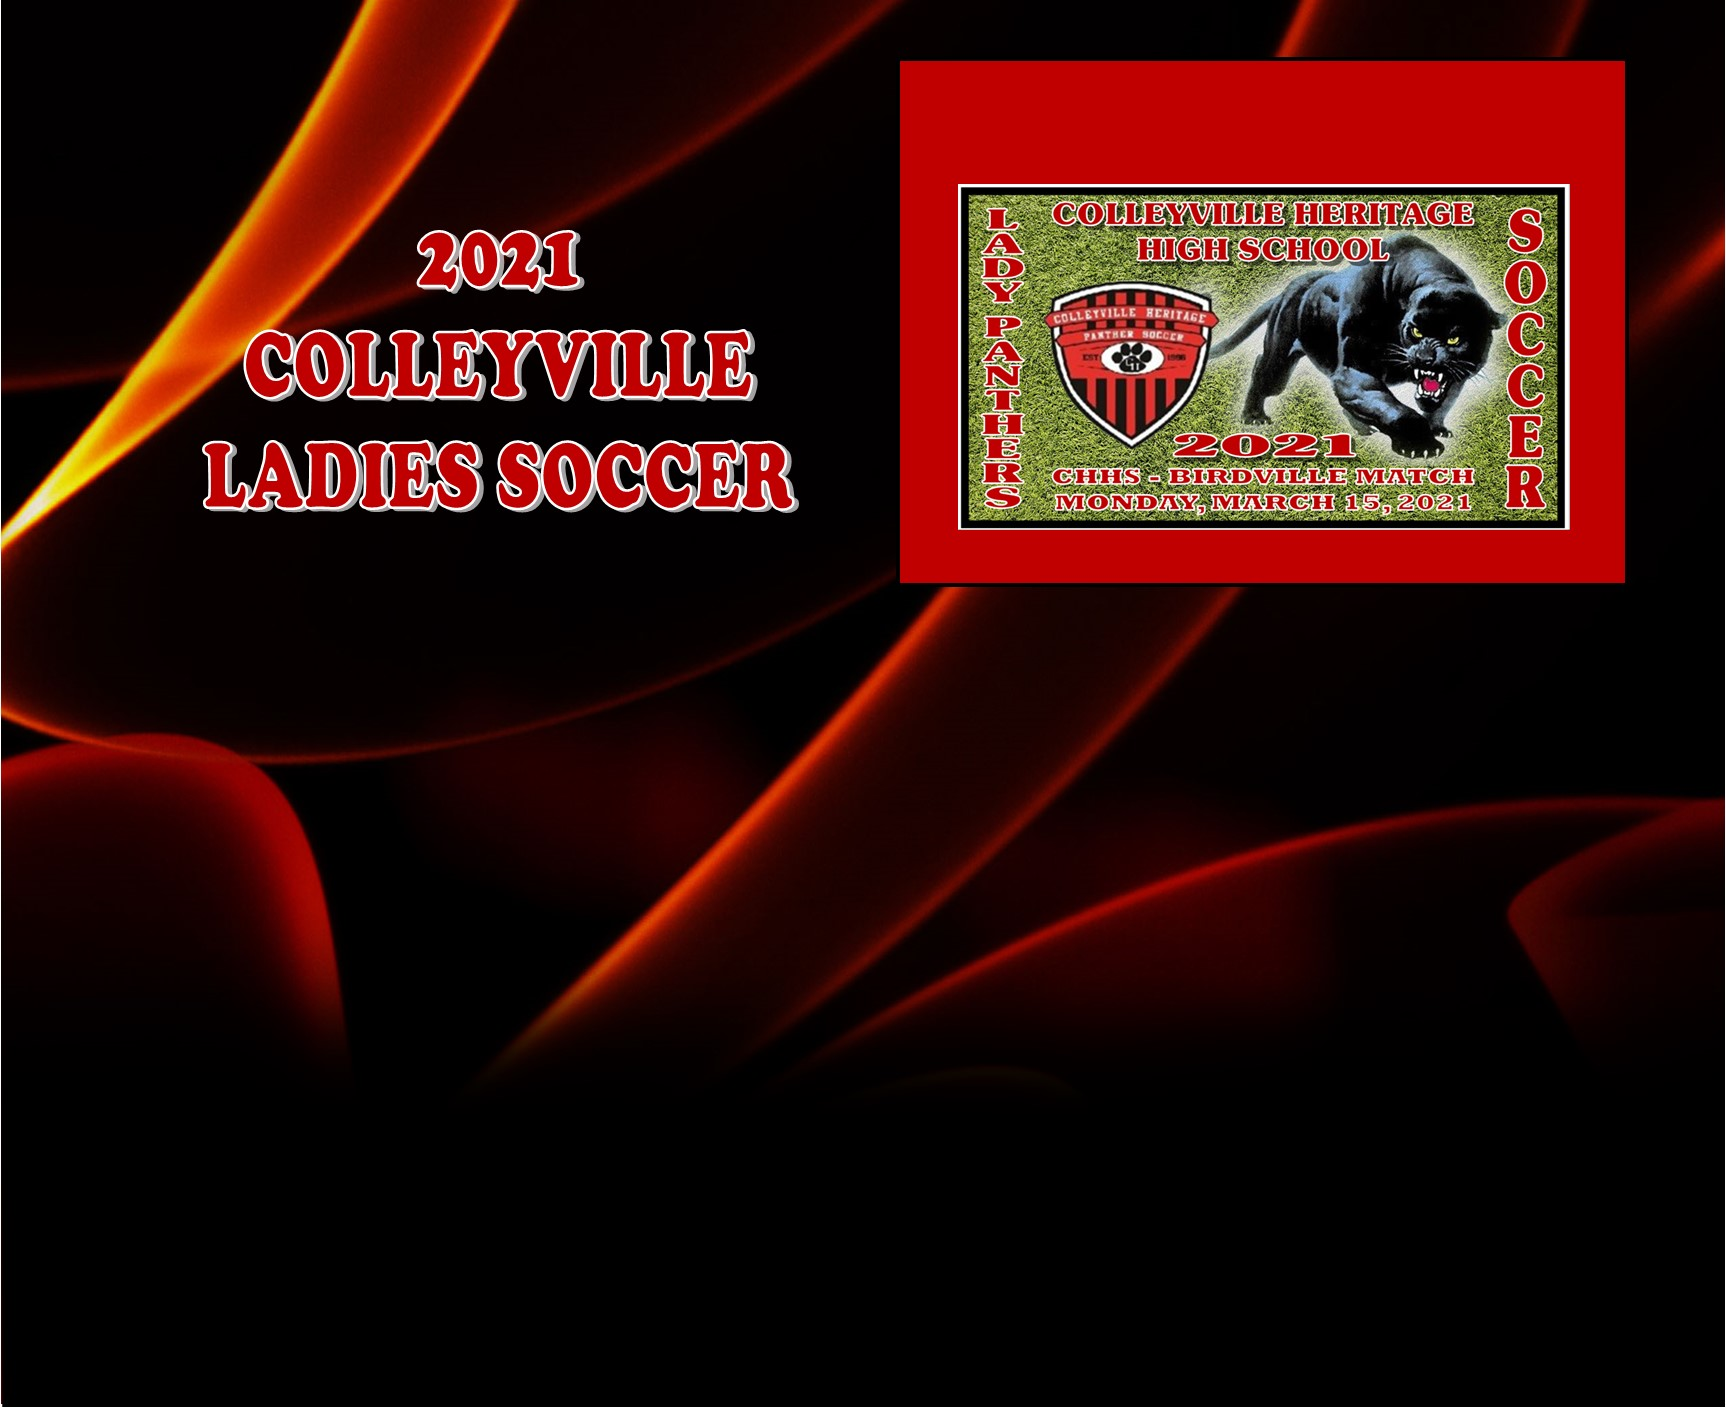 GCISD Ladies Soccer: Colleyville Panthers Frustrated by Birdville Hawks 2-1